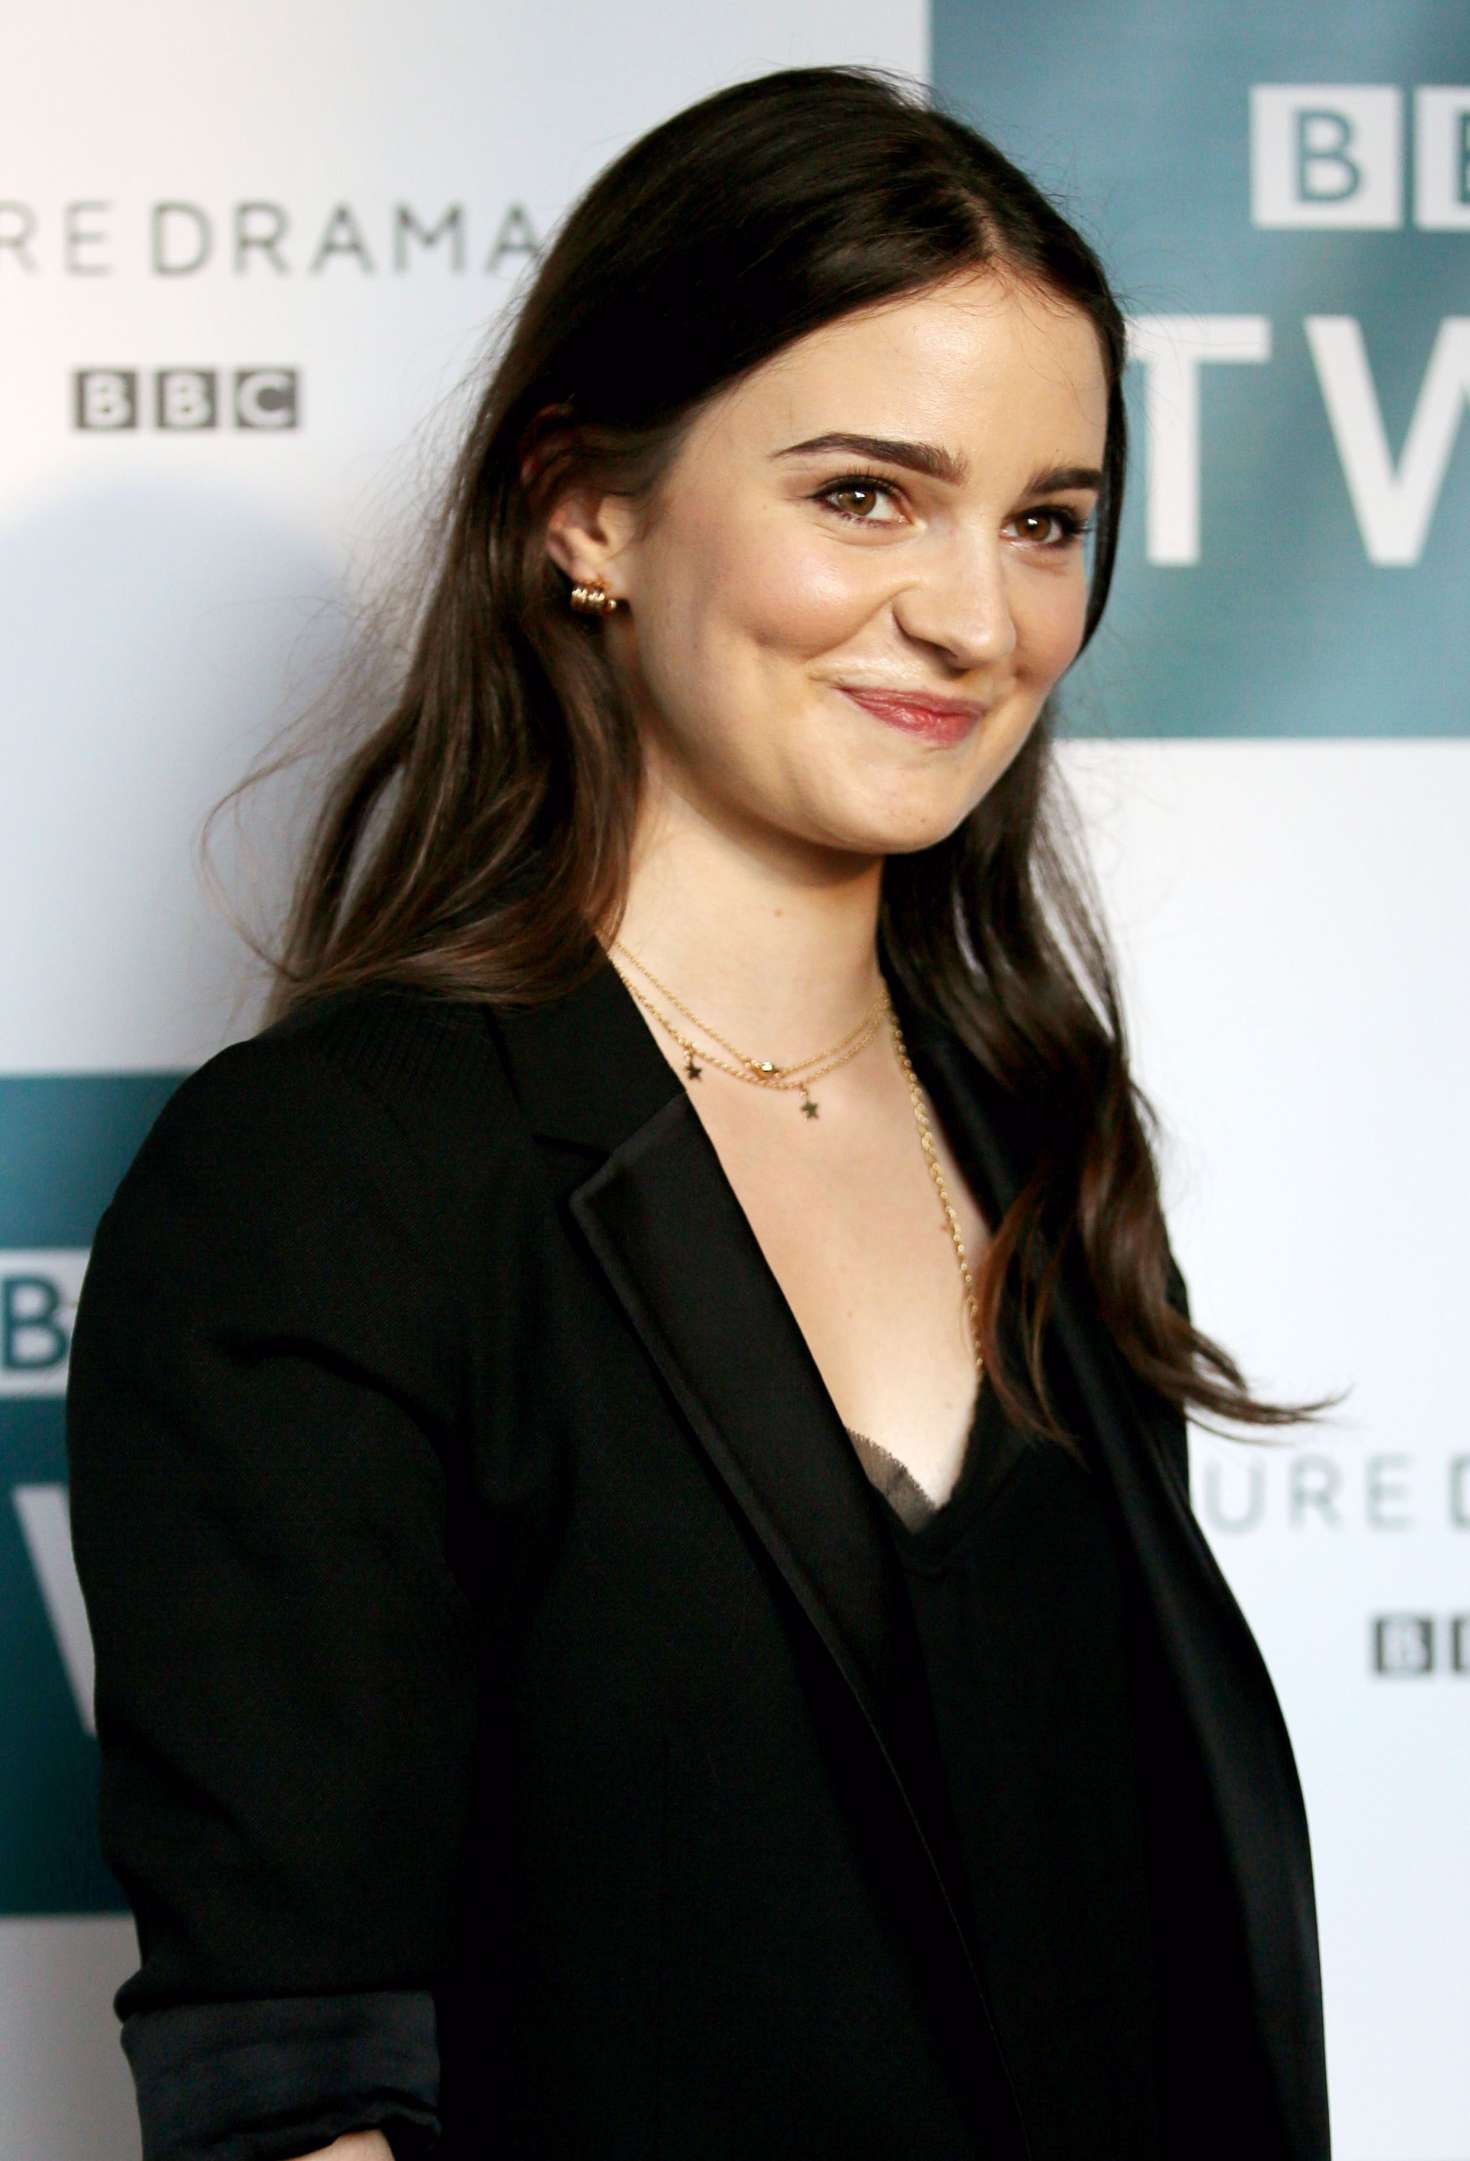 aisling franciosi singingaisling franciosi imdb, aisling franciosi gif, aisling franciosi instagram, aisling franciosi game of thrones, aisling franciosi height, aisling franciosi tumblr, aisling franciosi and shailene woodley, aisling franciosi birthday, aisling franciosi age, aisling franciosi born, aisling franciosi the fall, aisling franciosi bio, aisling franciosi singing, aisling franciosi date of birth, aisling franciosi biography, aisling franciosi facebook, aisling franciosi youtube, aisling franciosi scene, aisling franciosi wikipedia, aisling franciosi hot